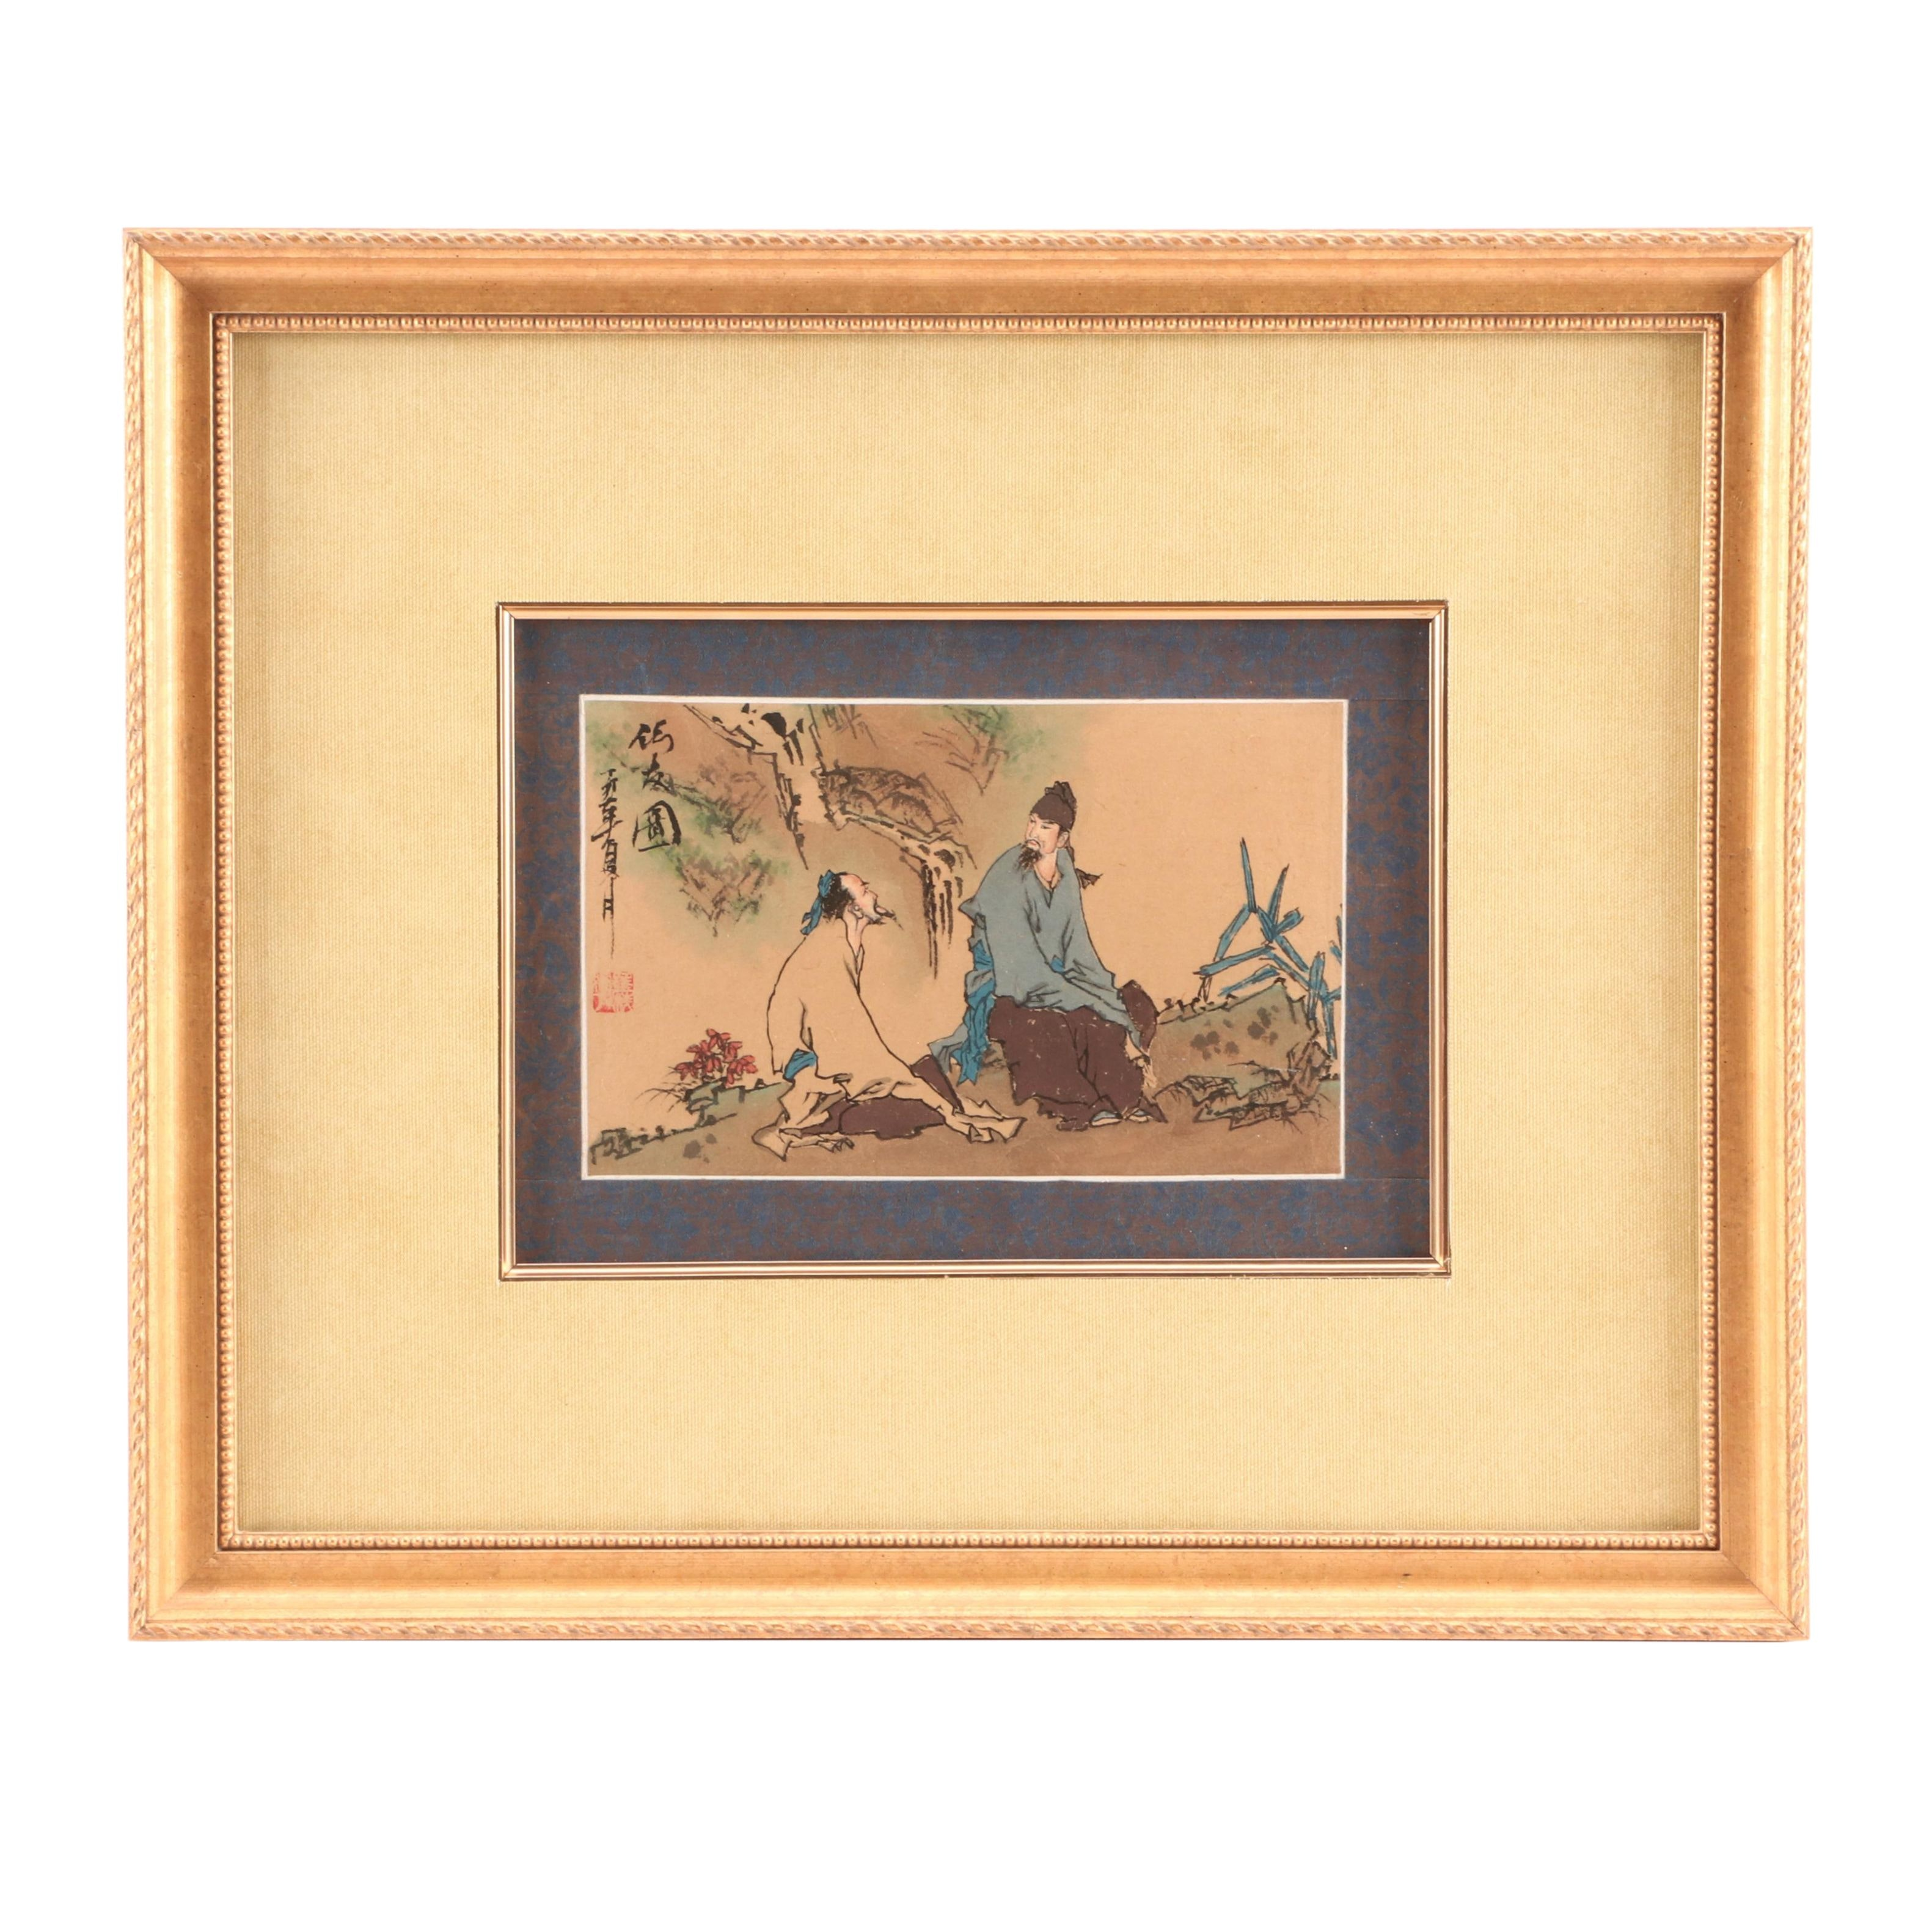 Vintage Chinese Watercolor Painting of Two Men Conversing in Garden